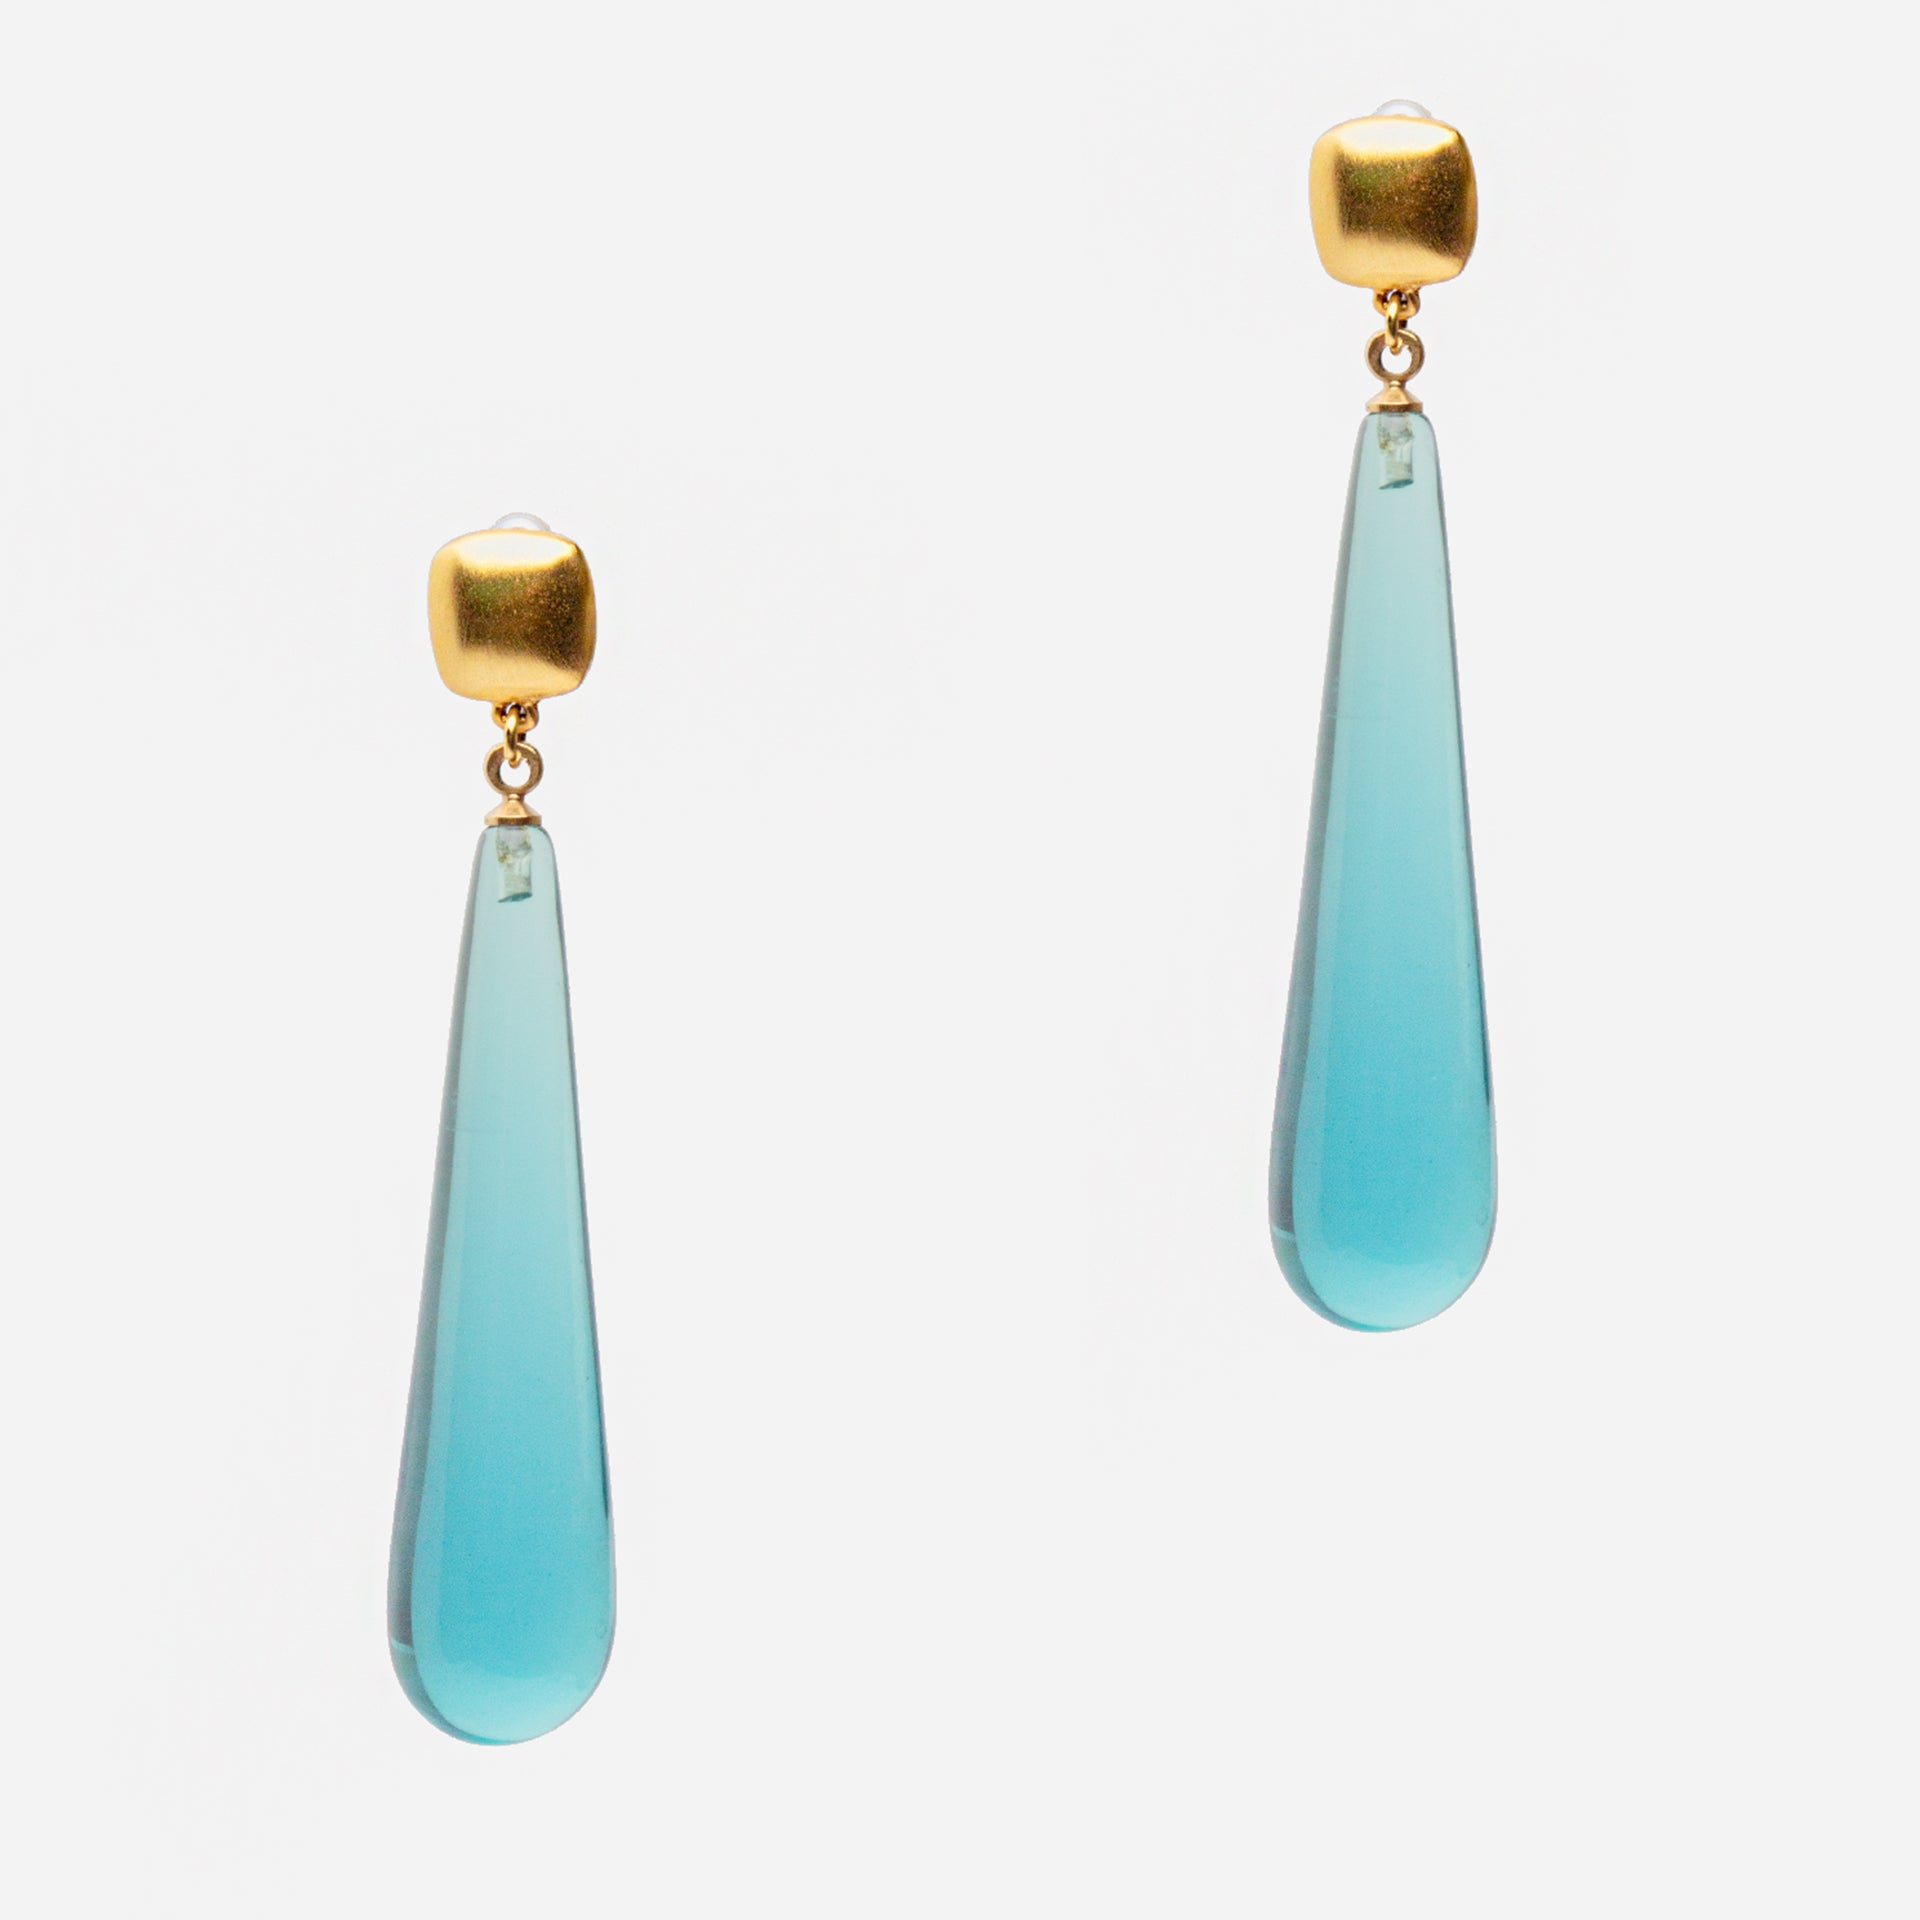 Aqua Gem Drop Earrings - Frances Valentine